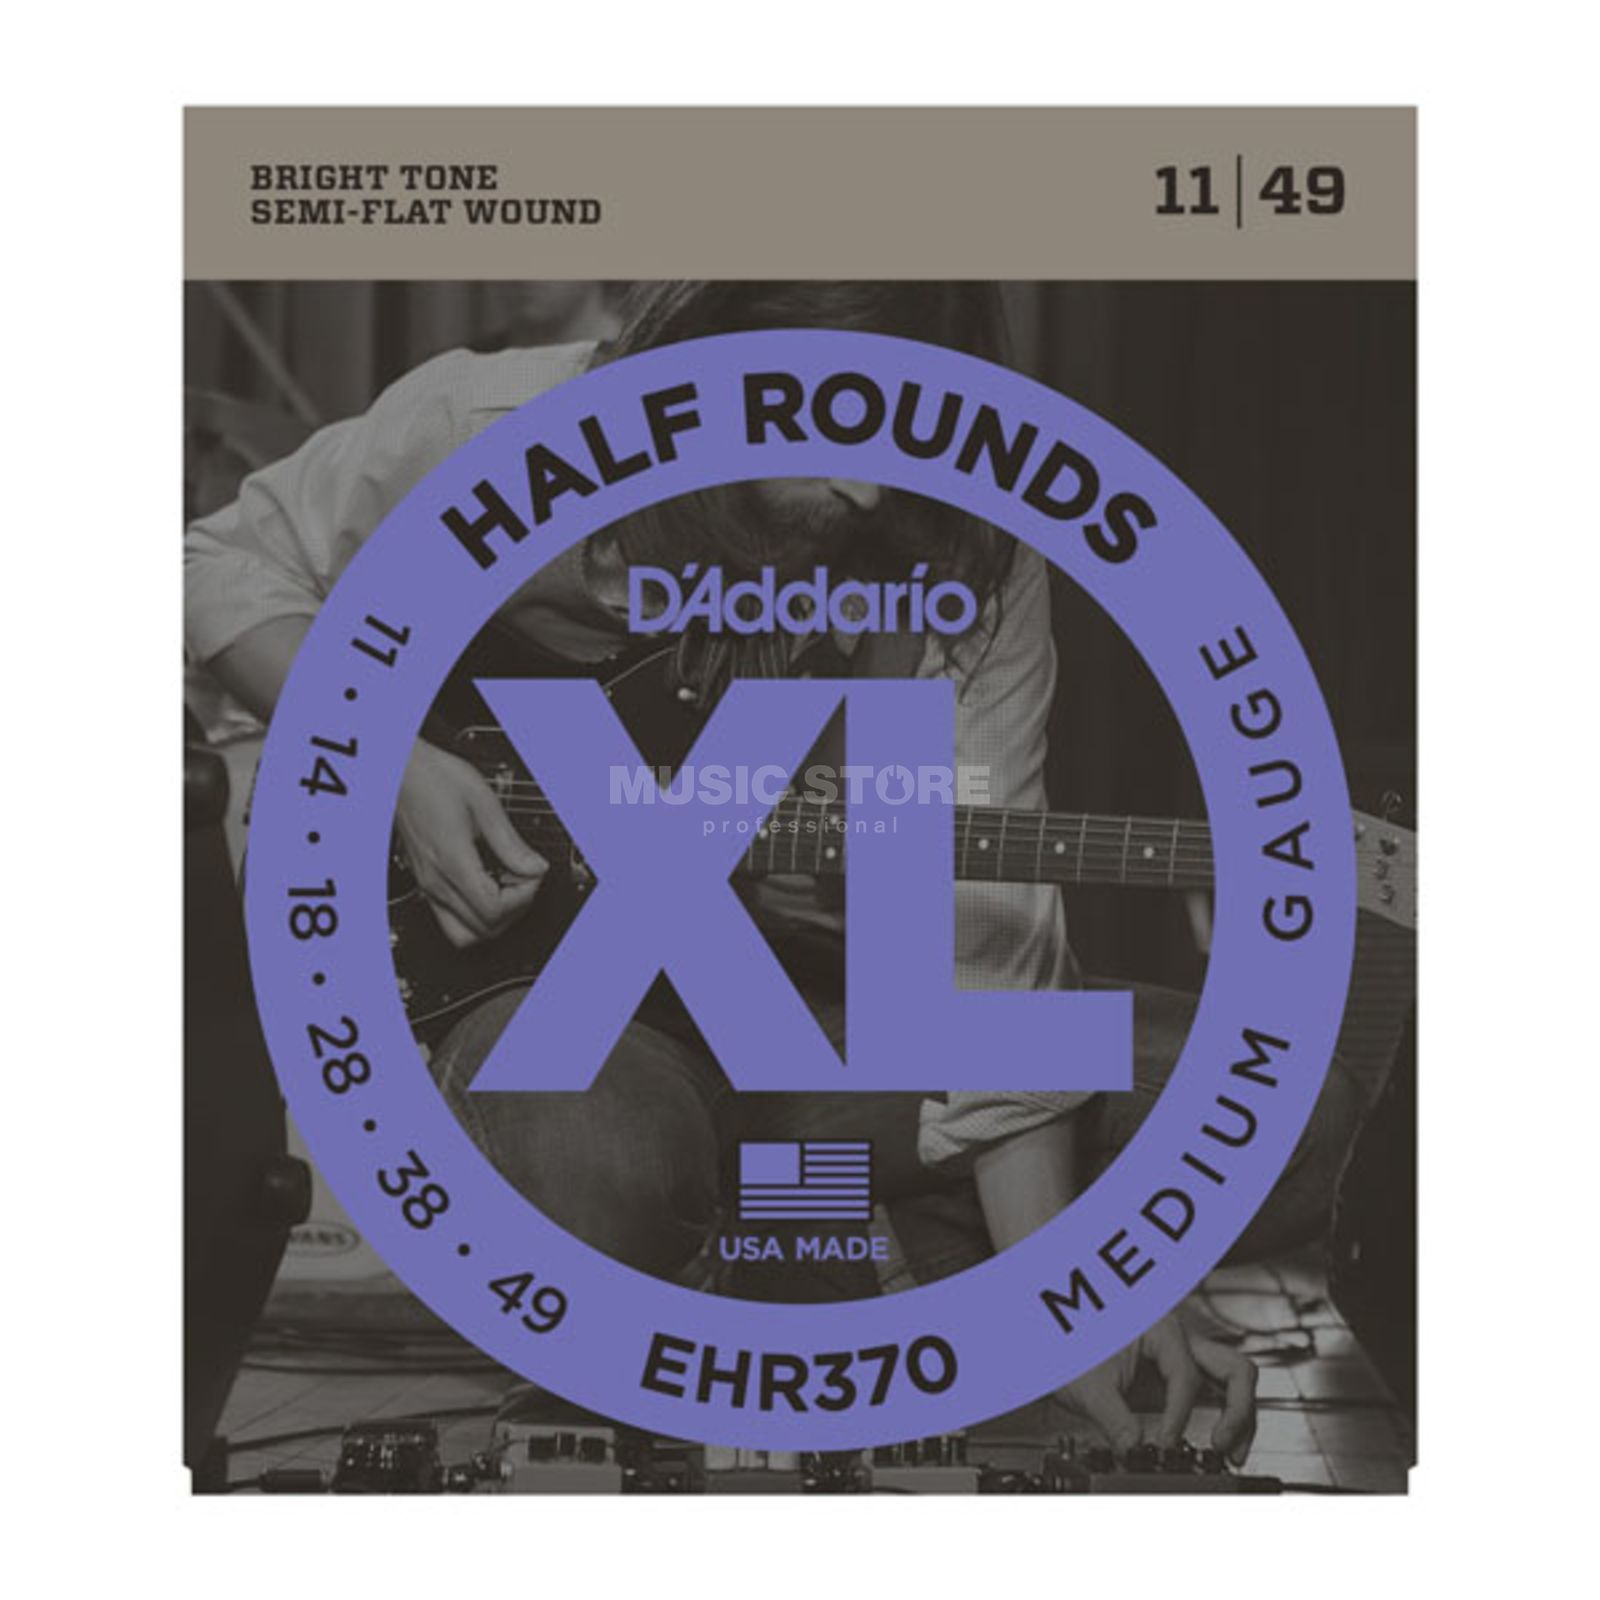 D'Addario E-Guitar Strings EHR370 11-49 Half Rounds Stainless Steel Produktbillede